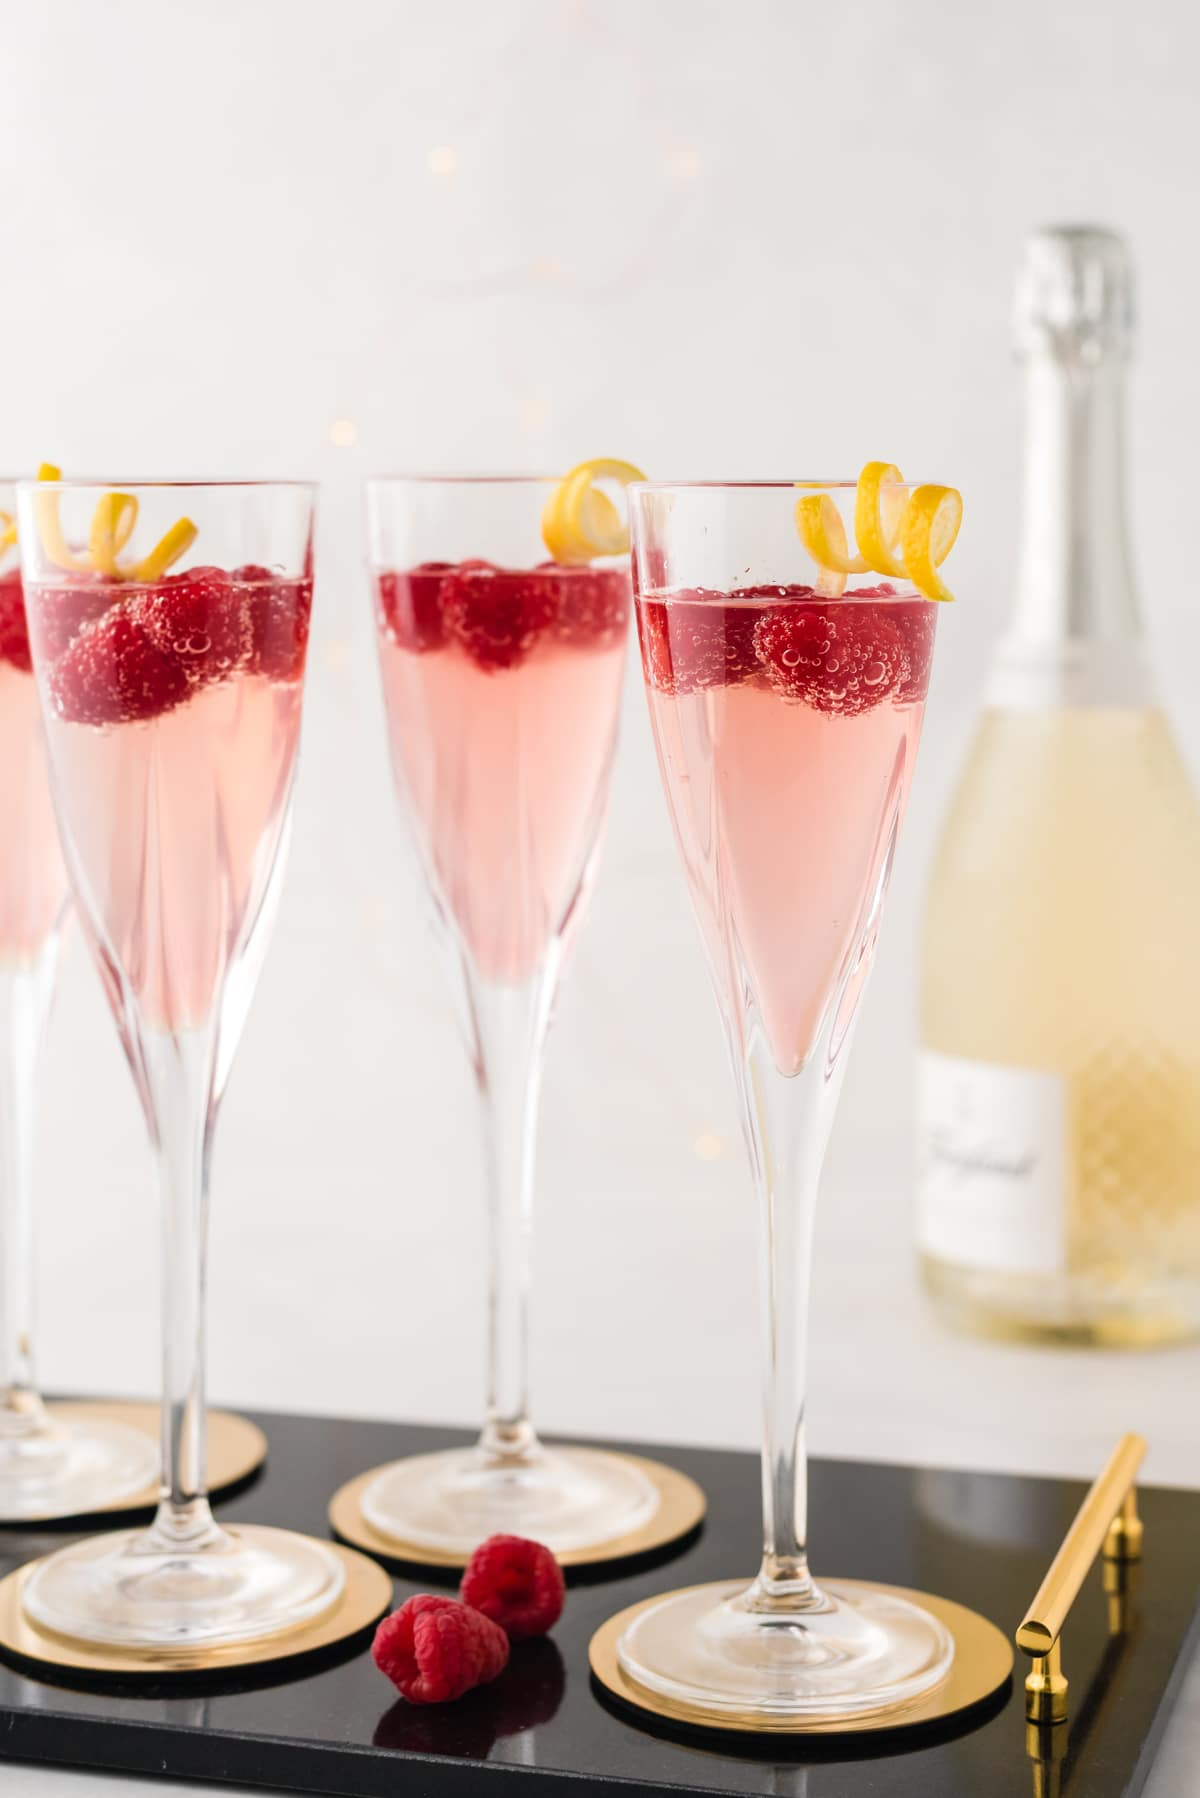 Champagne glasses with raspberries and a lemon twist.